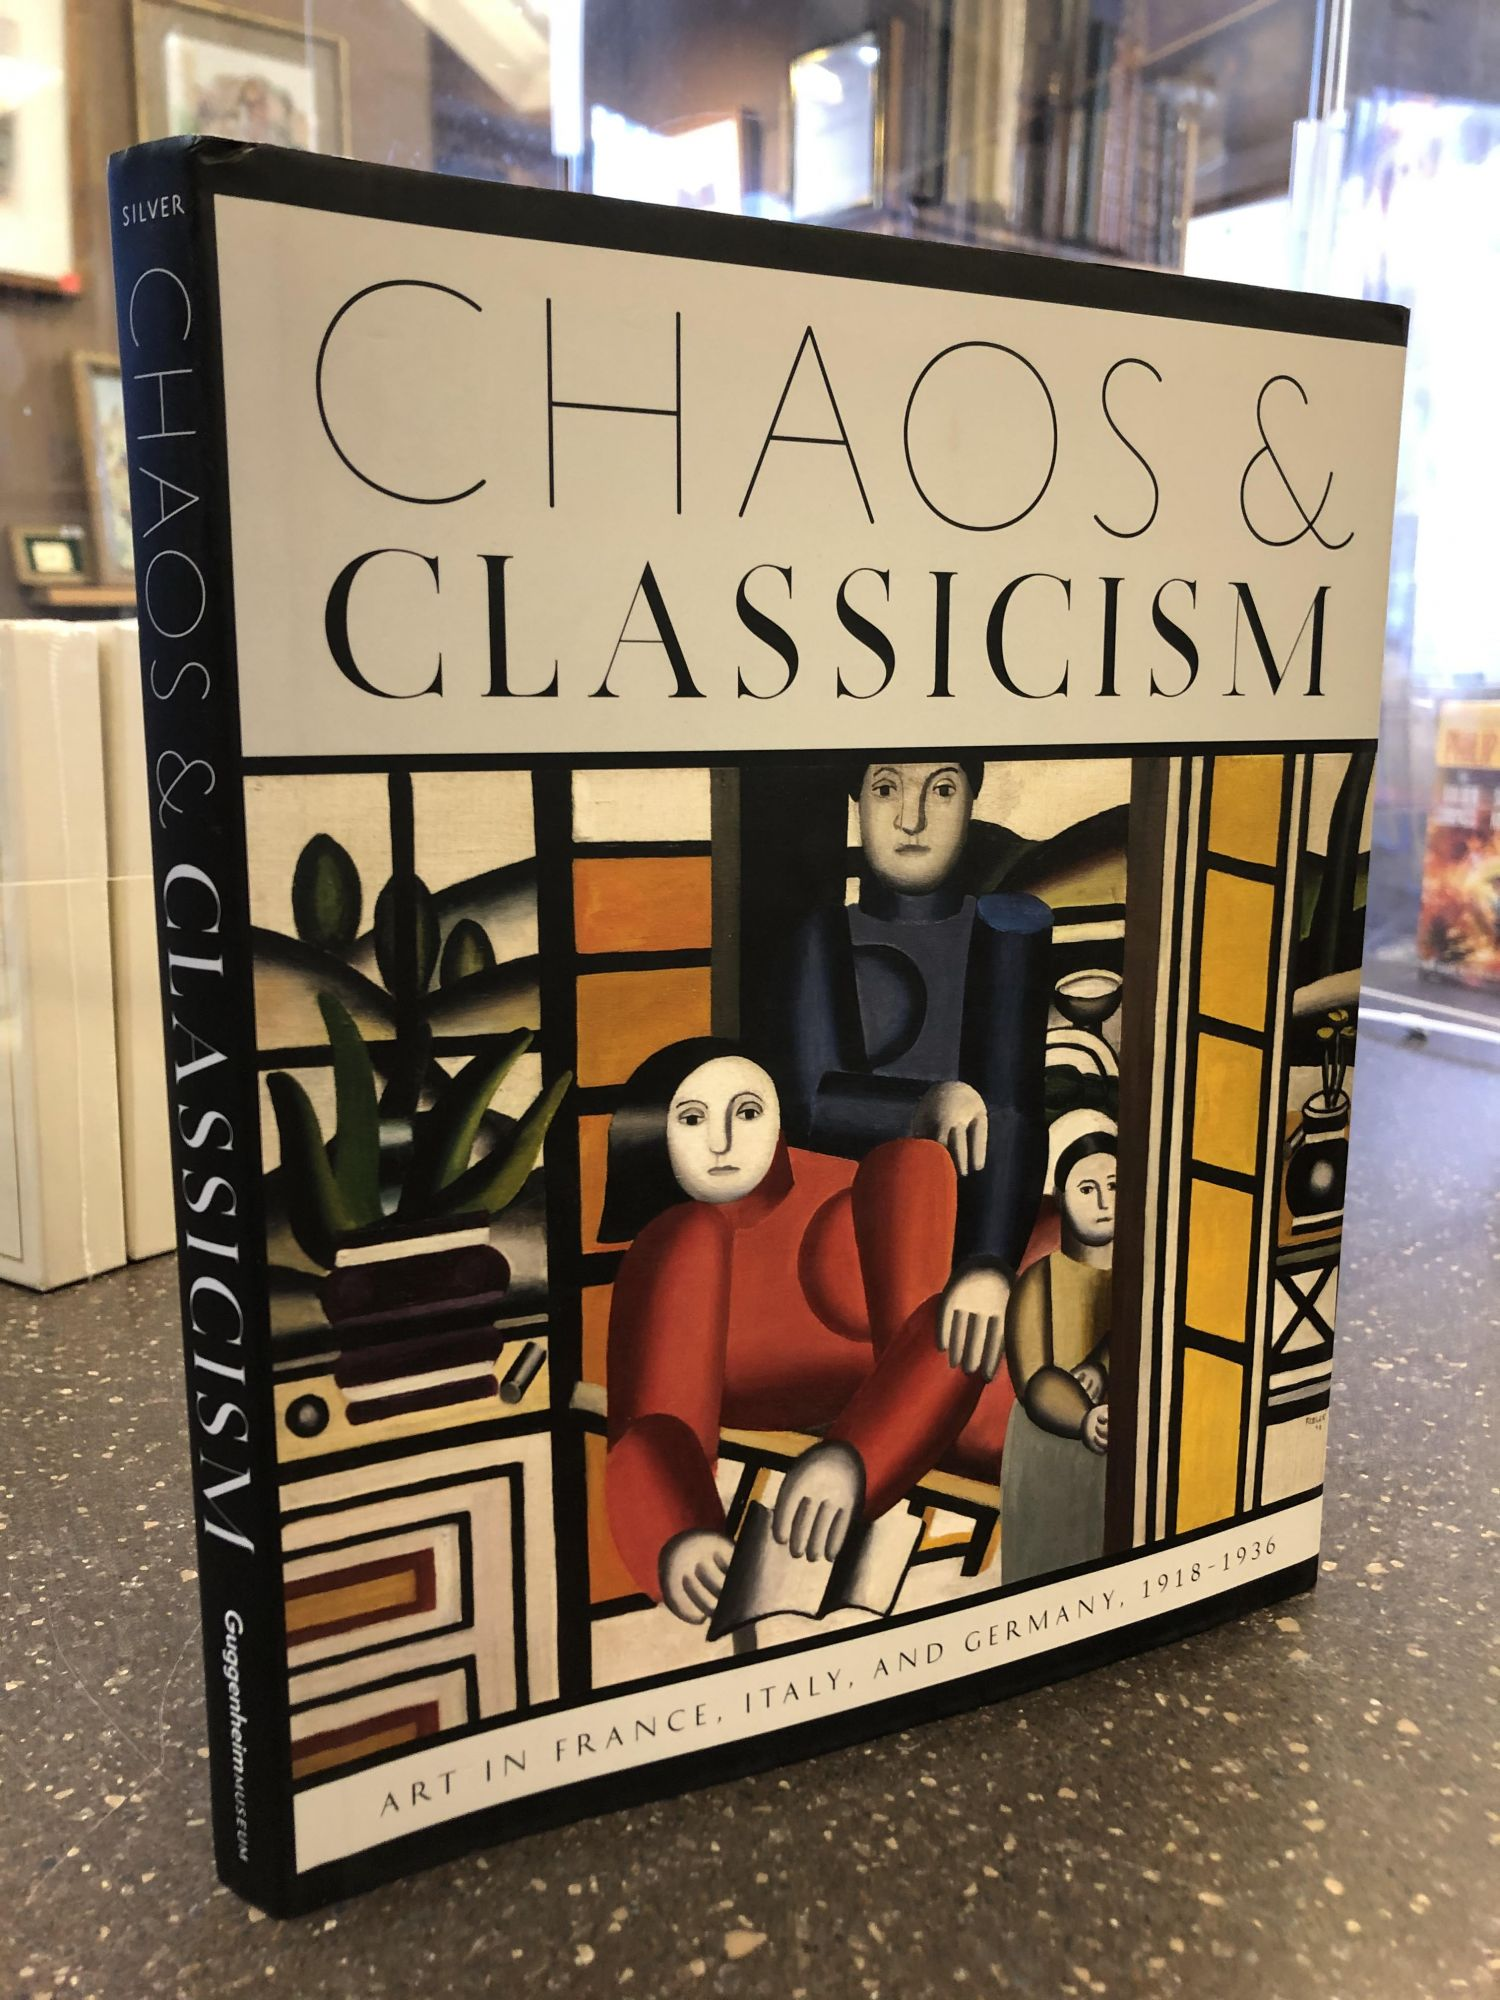 CHAOS AND CLASSICISM: ART IN FRANCE, ITALY, AND GERMANY, 1918-1936. Kenneth E. Silver.